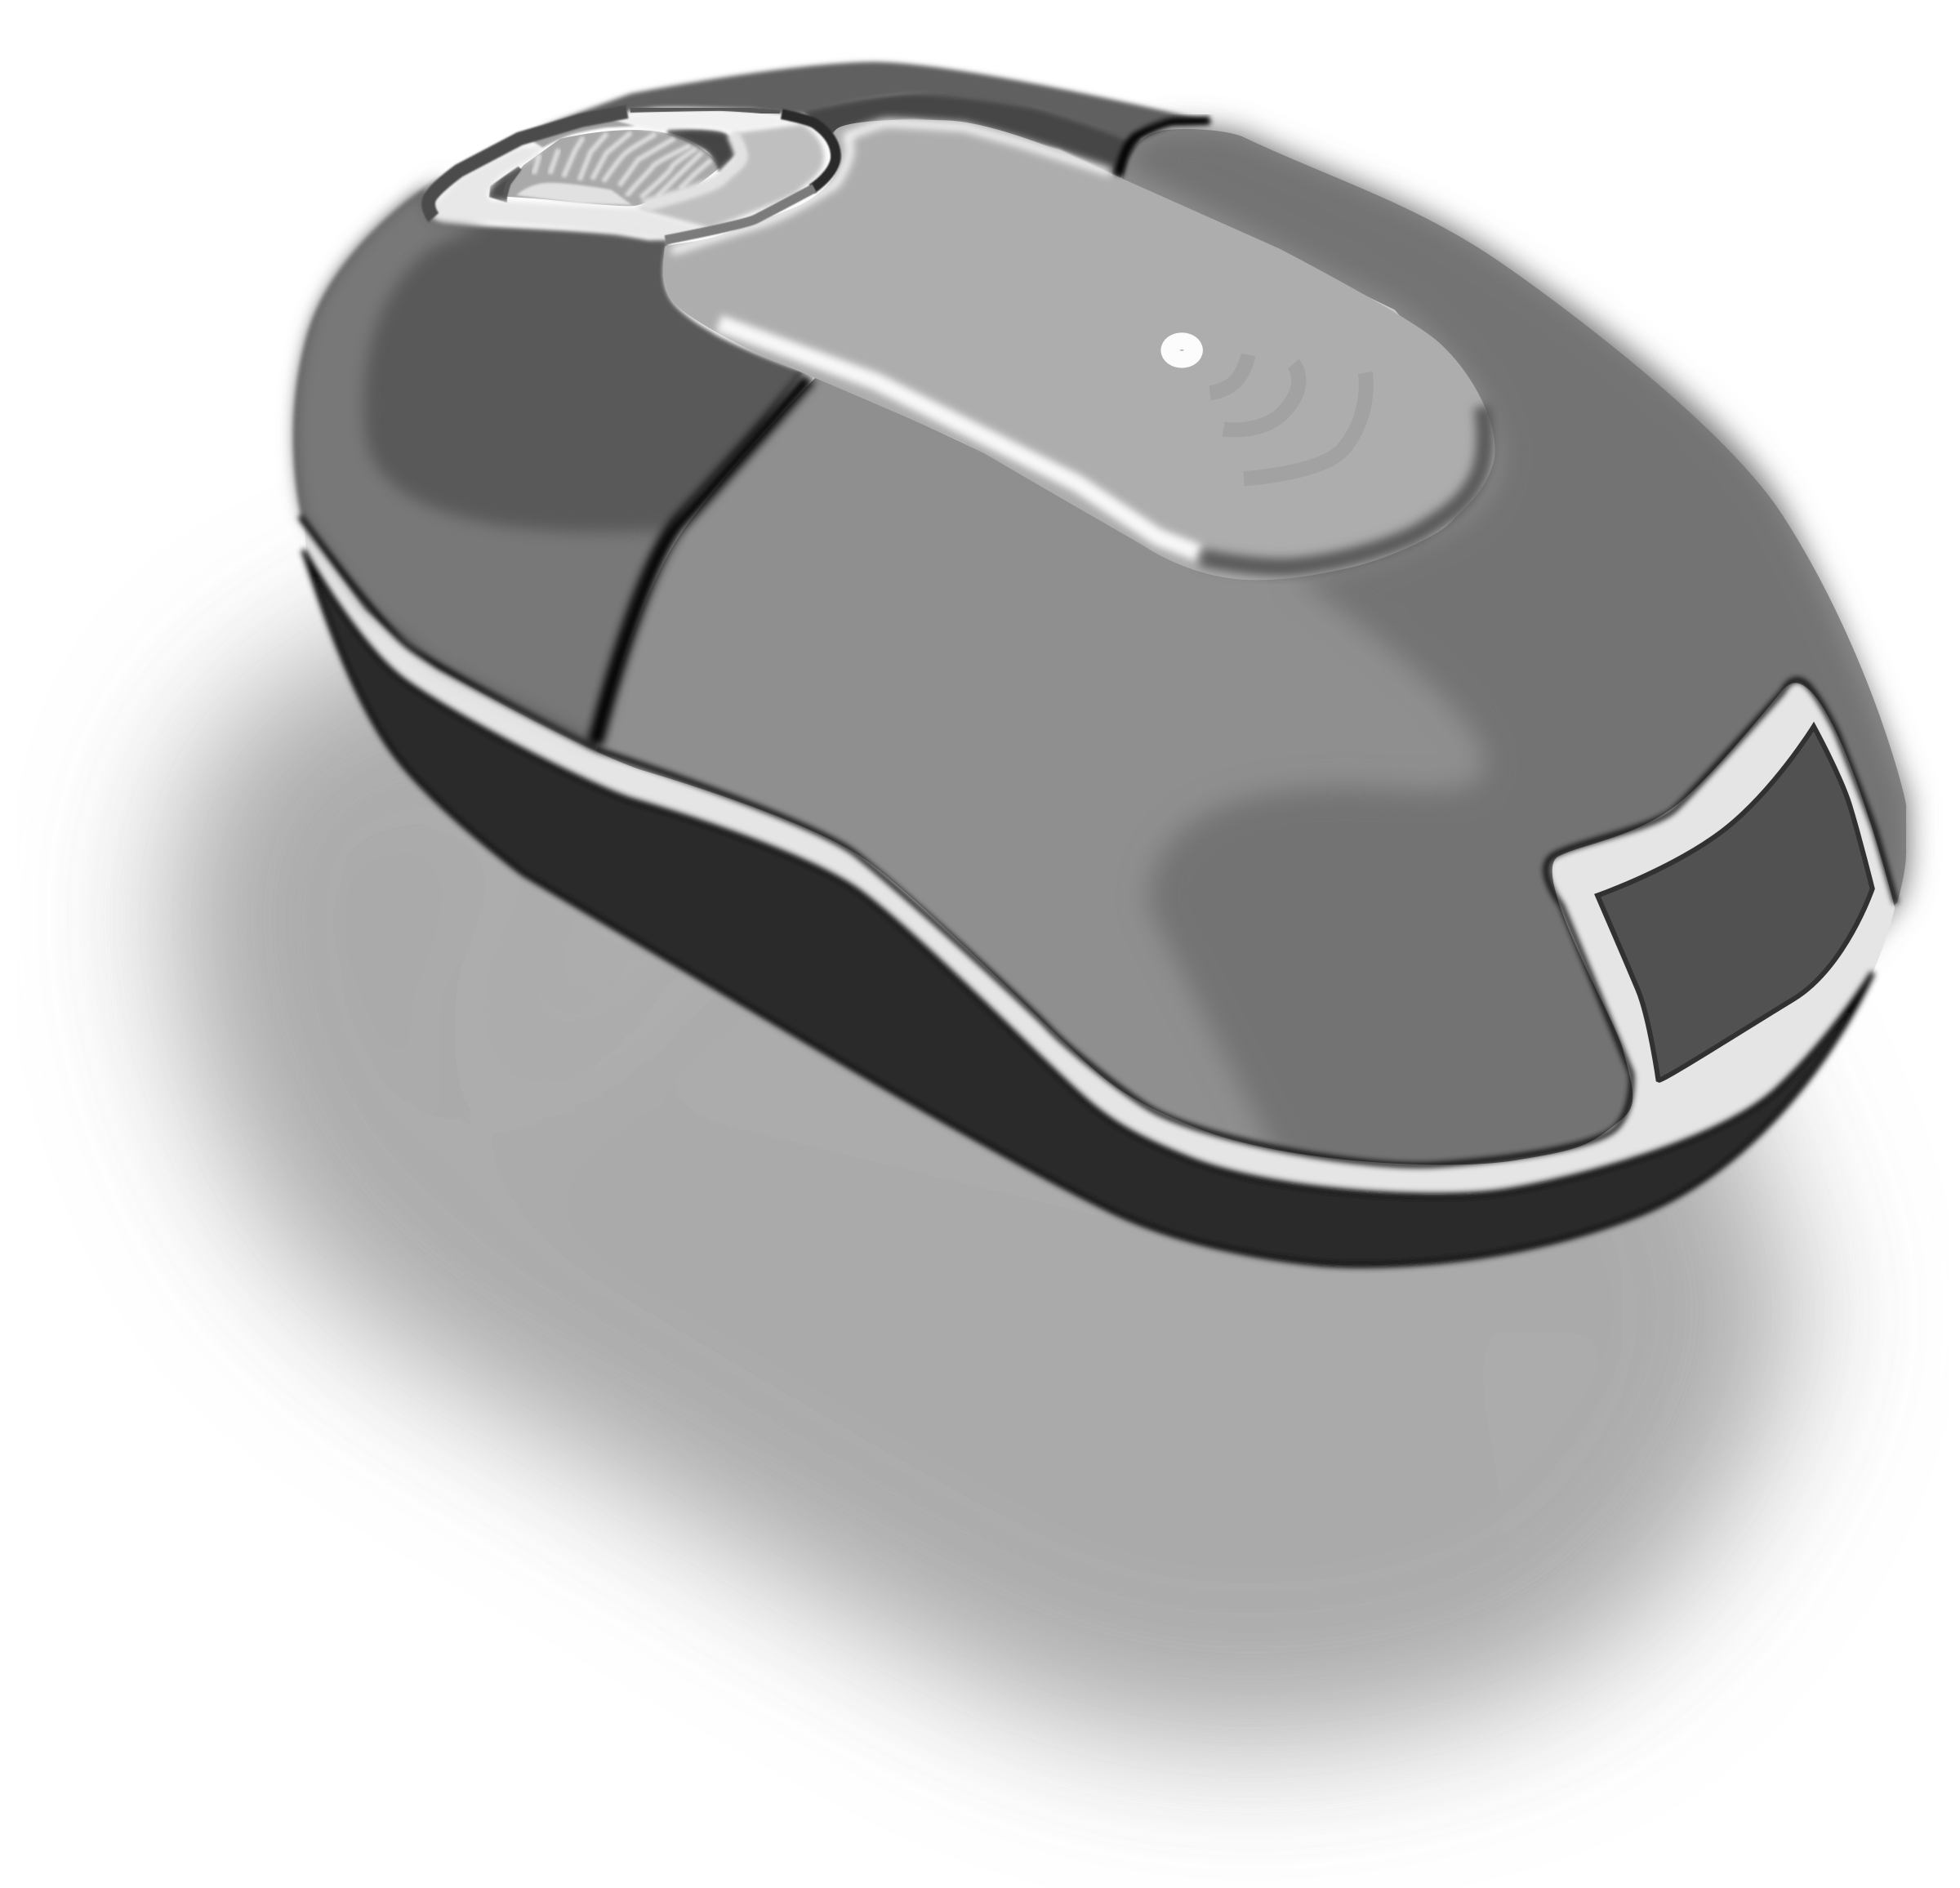 Mouse (Hardware) by mystica